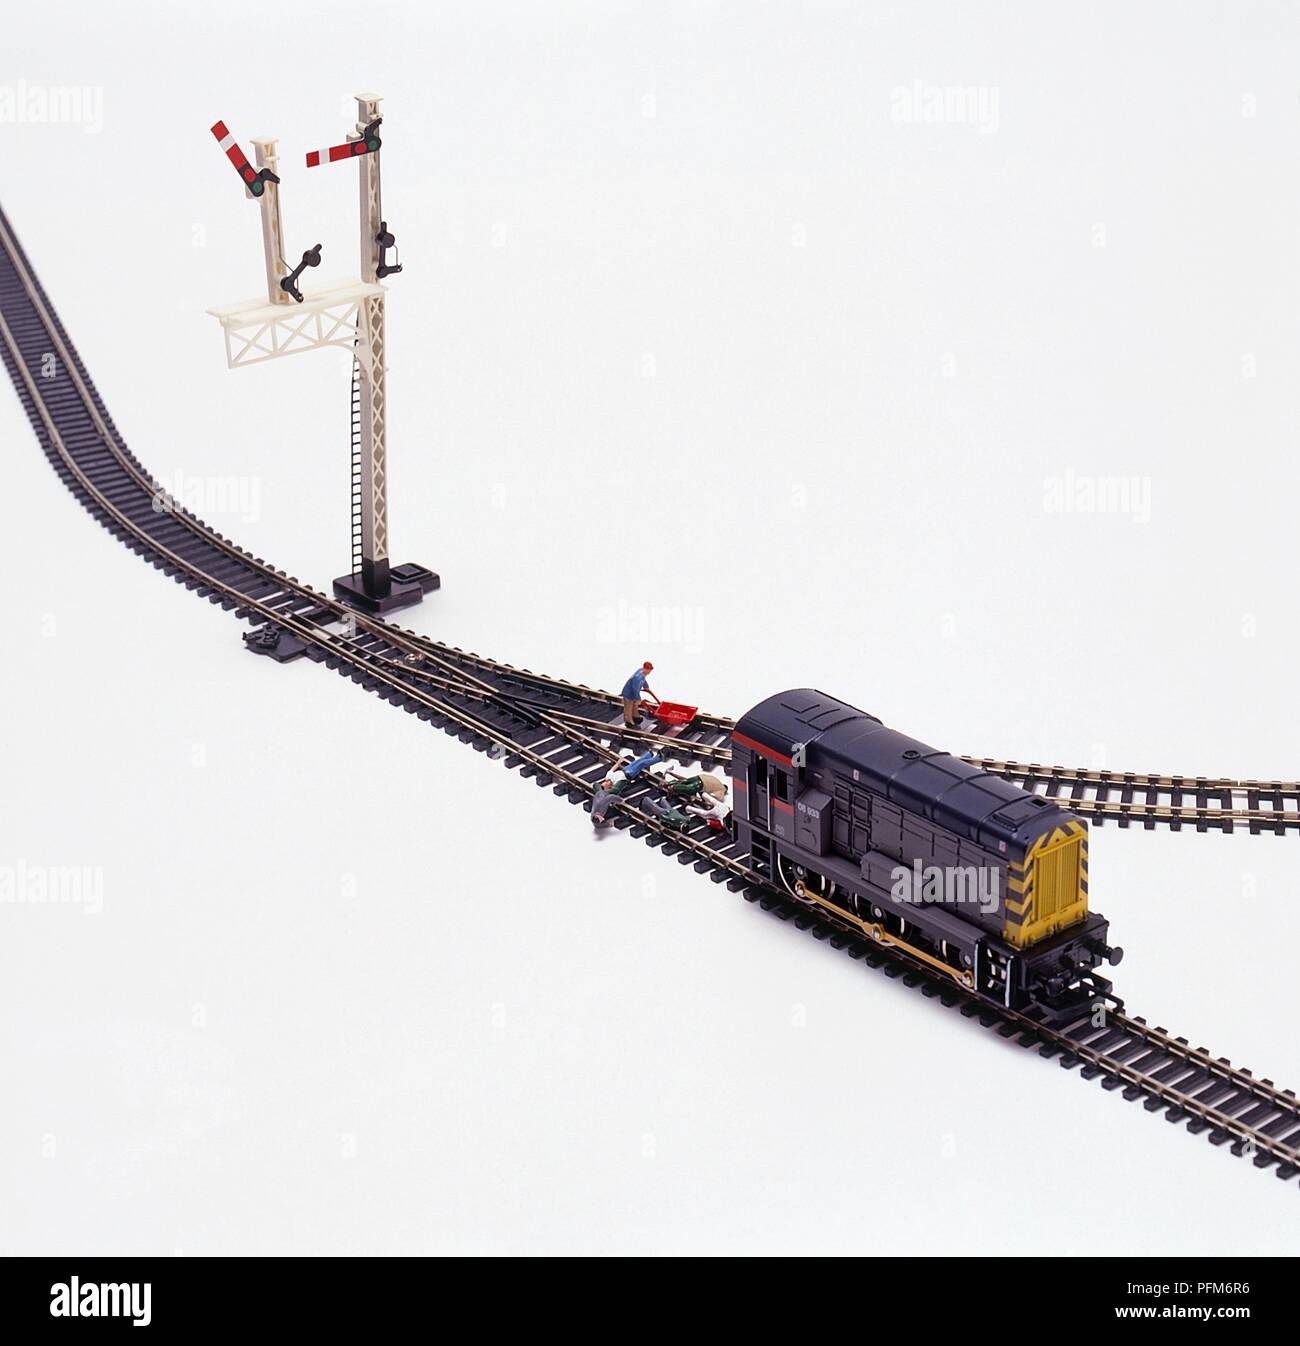 Miniature train with group of toy people lying on the tracks and a worker on another track nearby - Stock Image